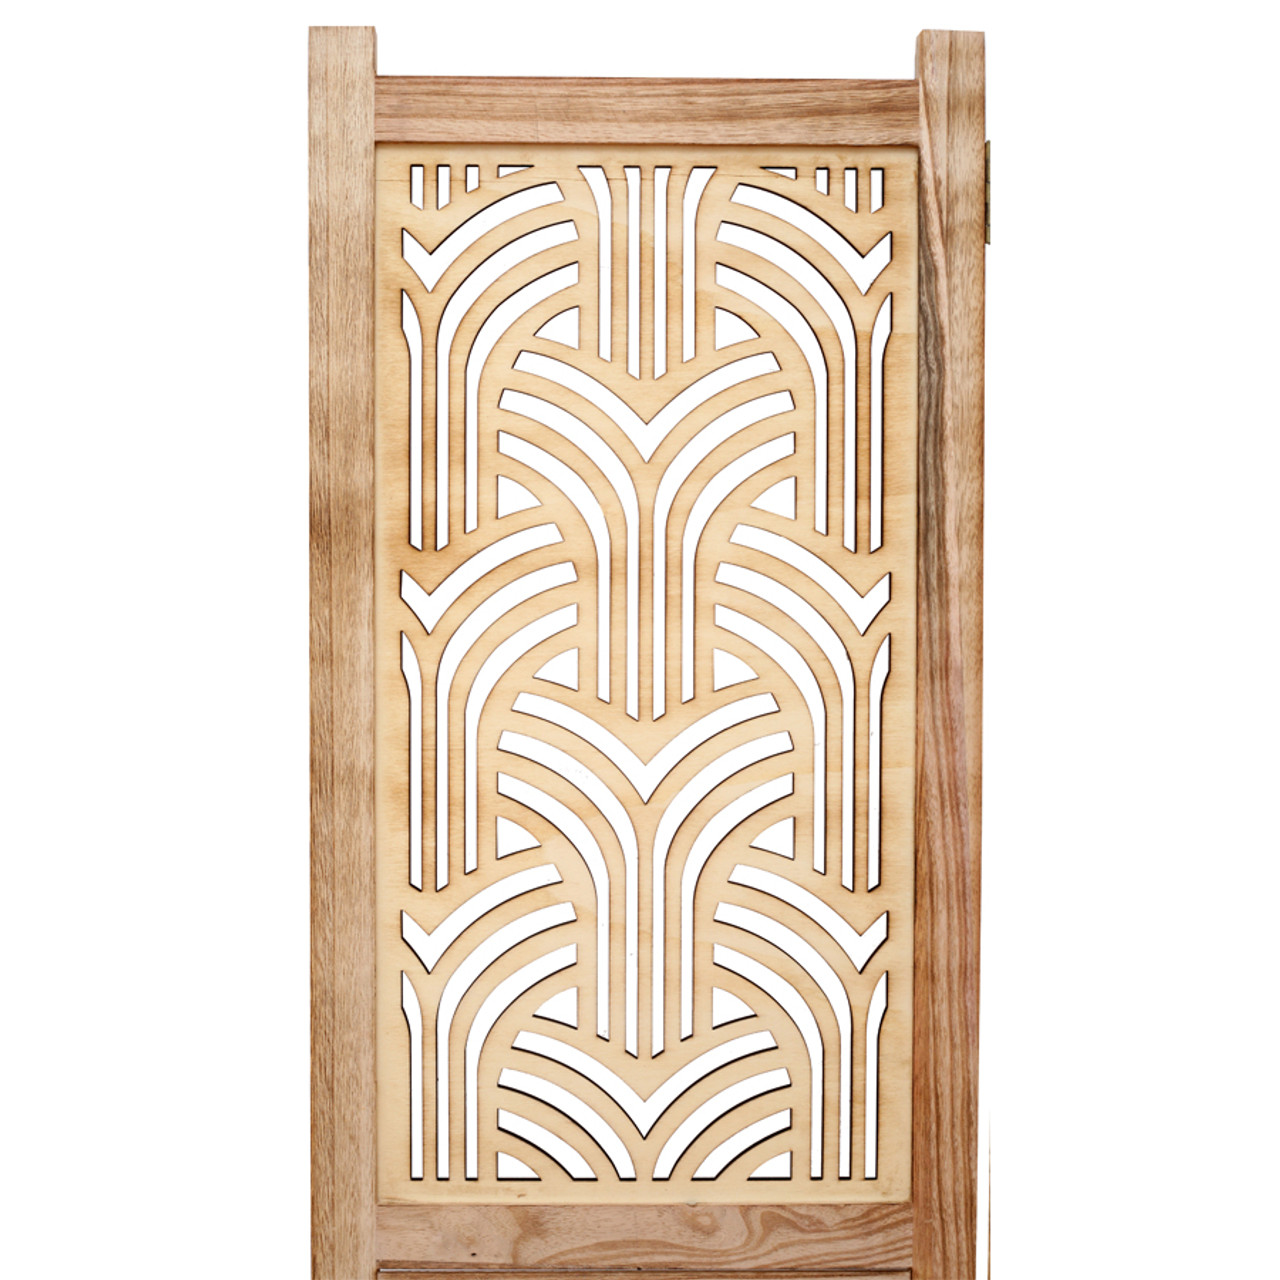 3 Panel Rustic solid wood with decorative detail room divider in USA, CA, NY, New York City, Los Angeles, San Francisco, Pennsylvania, Washington DC, Virginia, Maryland